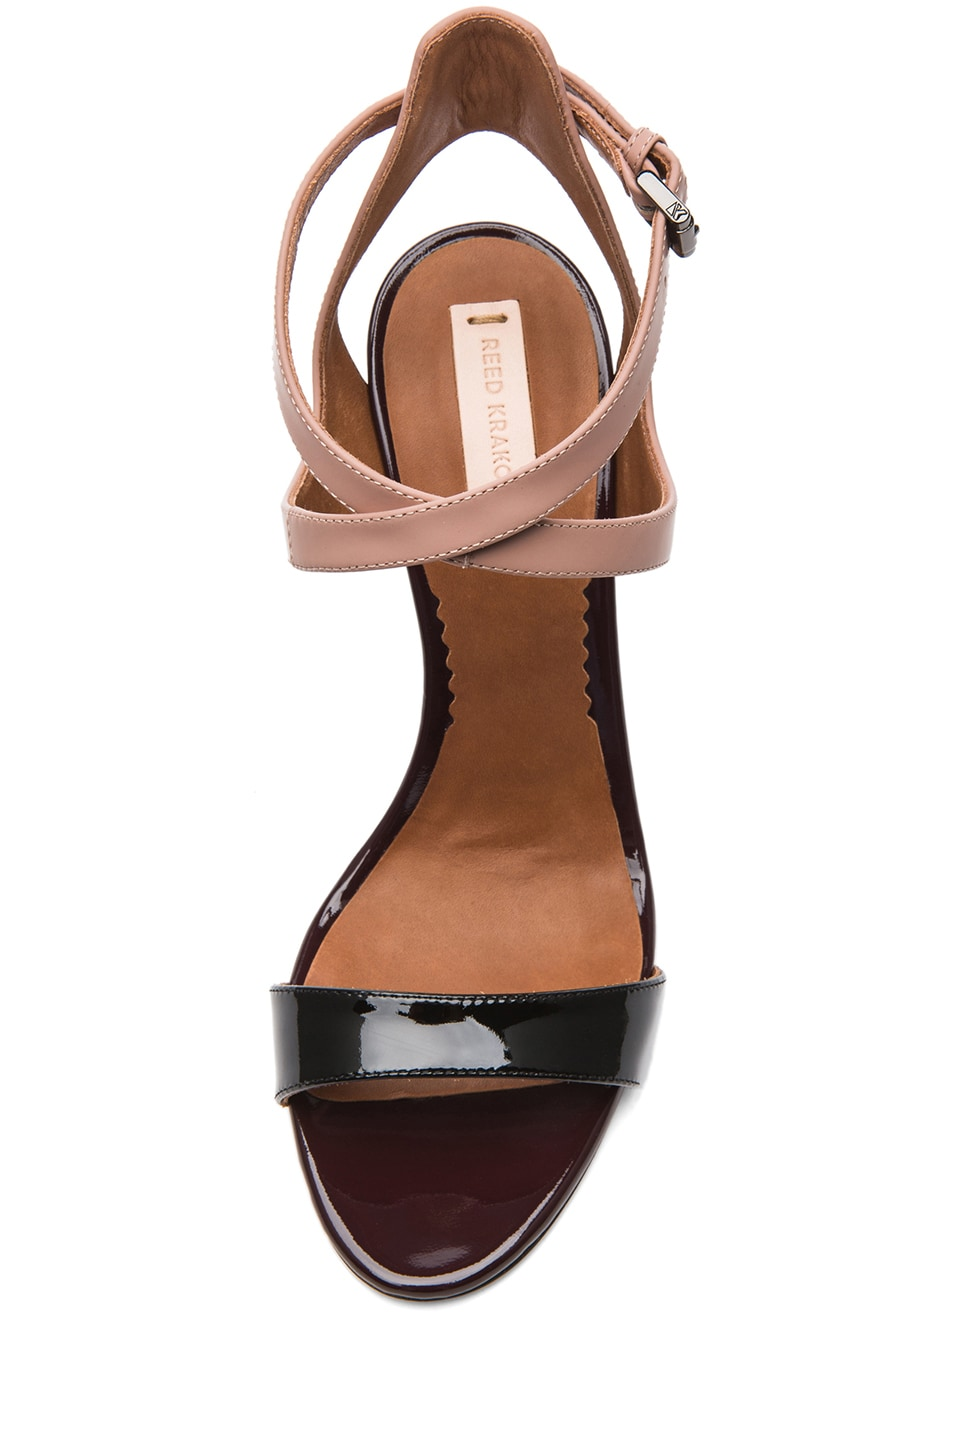 Image 4 of Reed Krakoff Glossy Leather Ankle Harness Sandals in Black & Nude